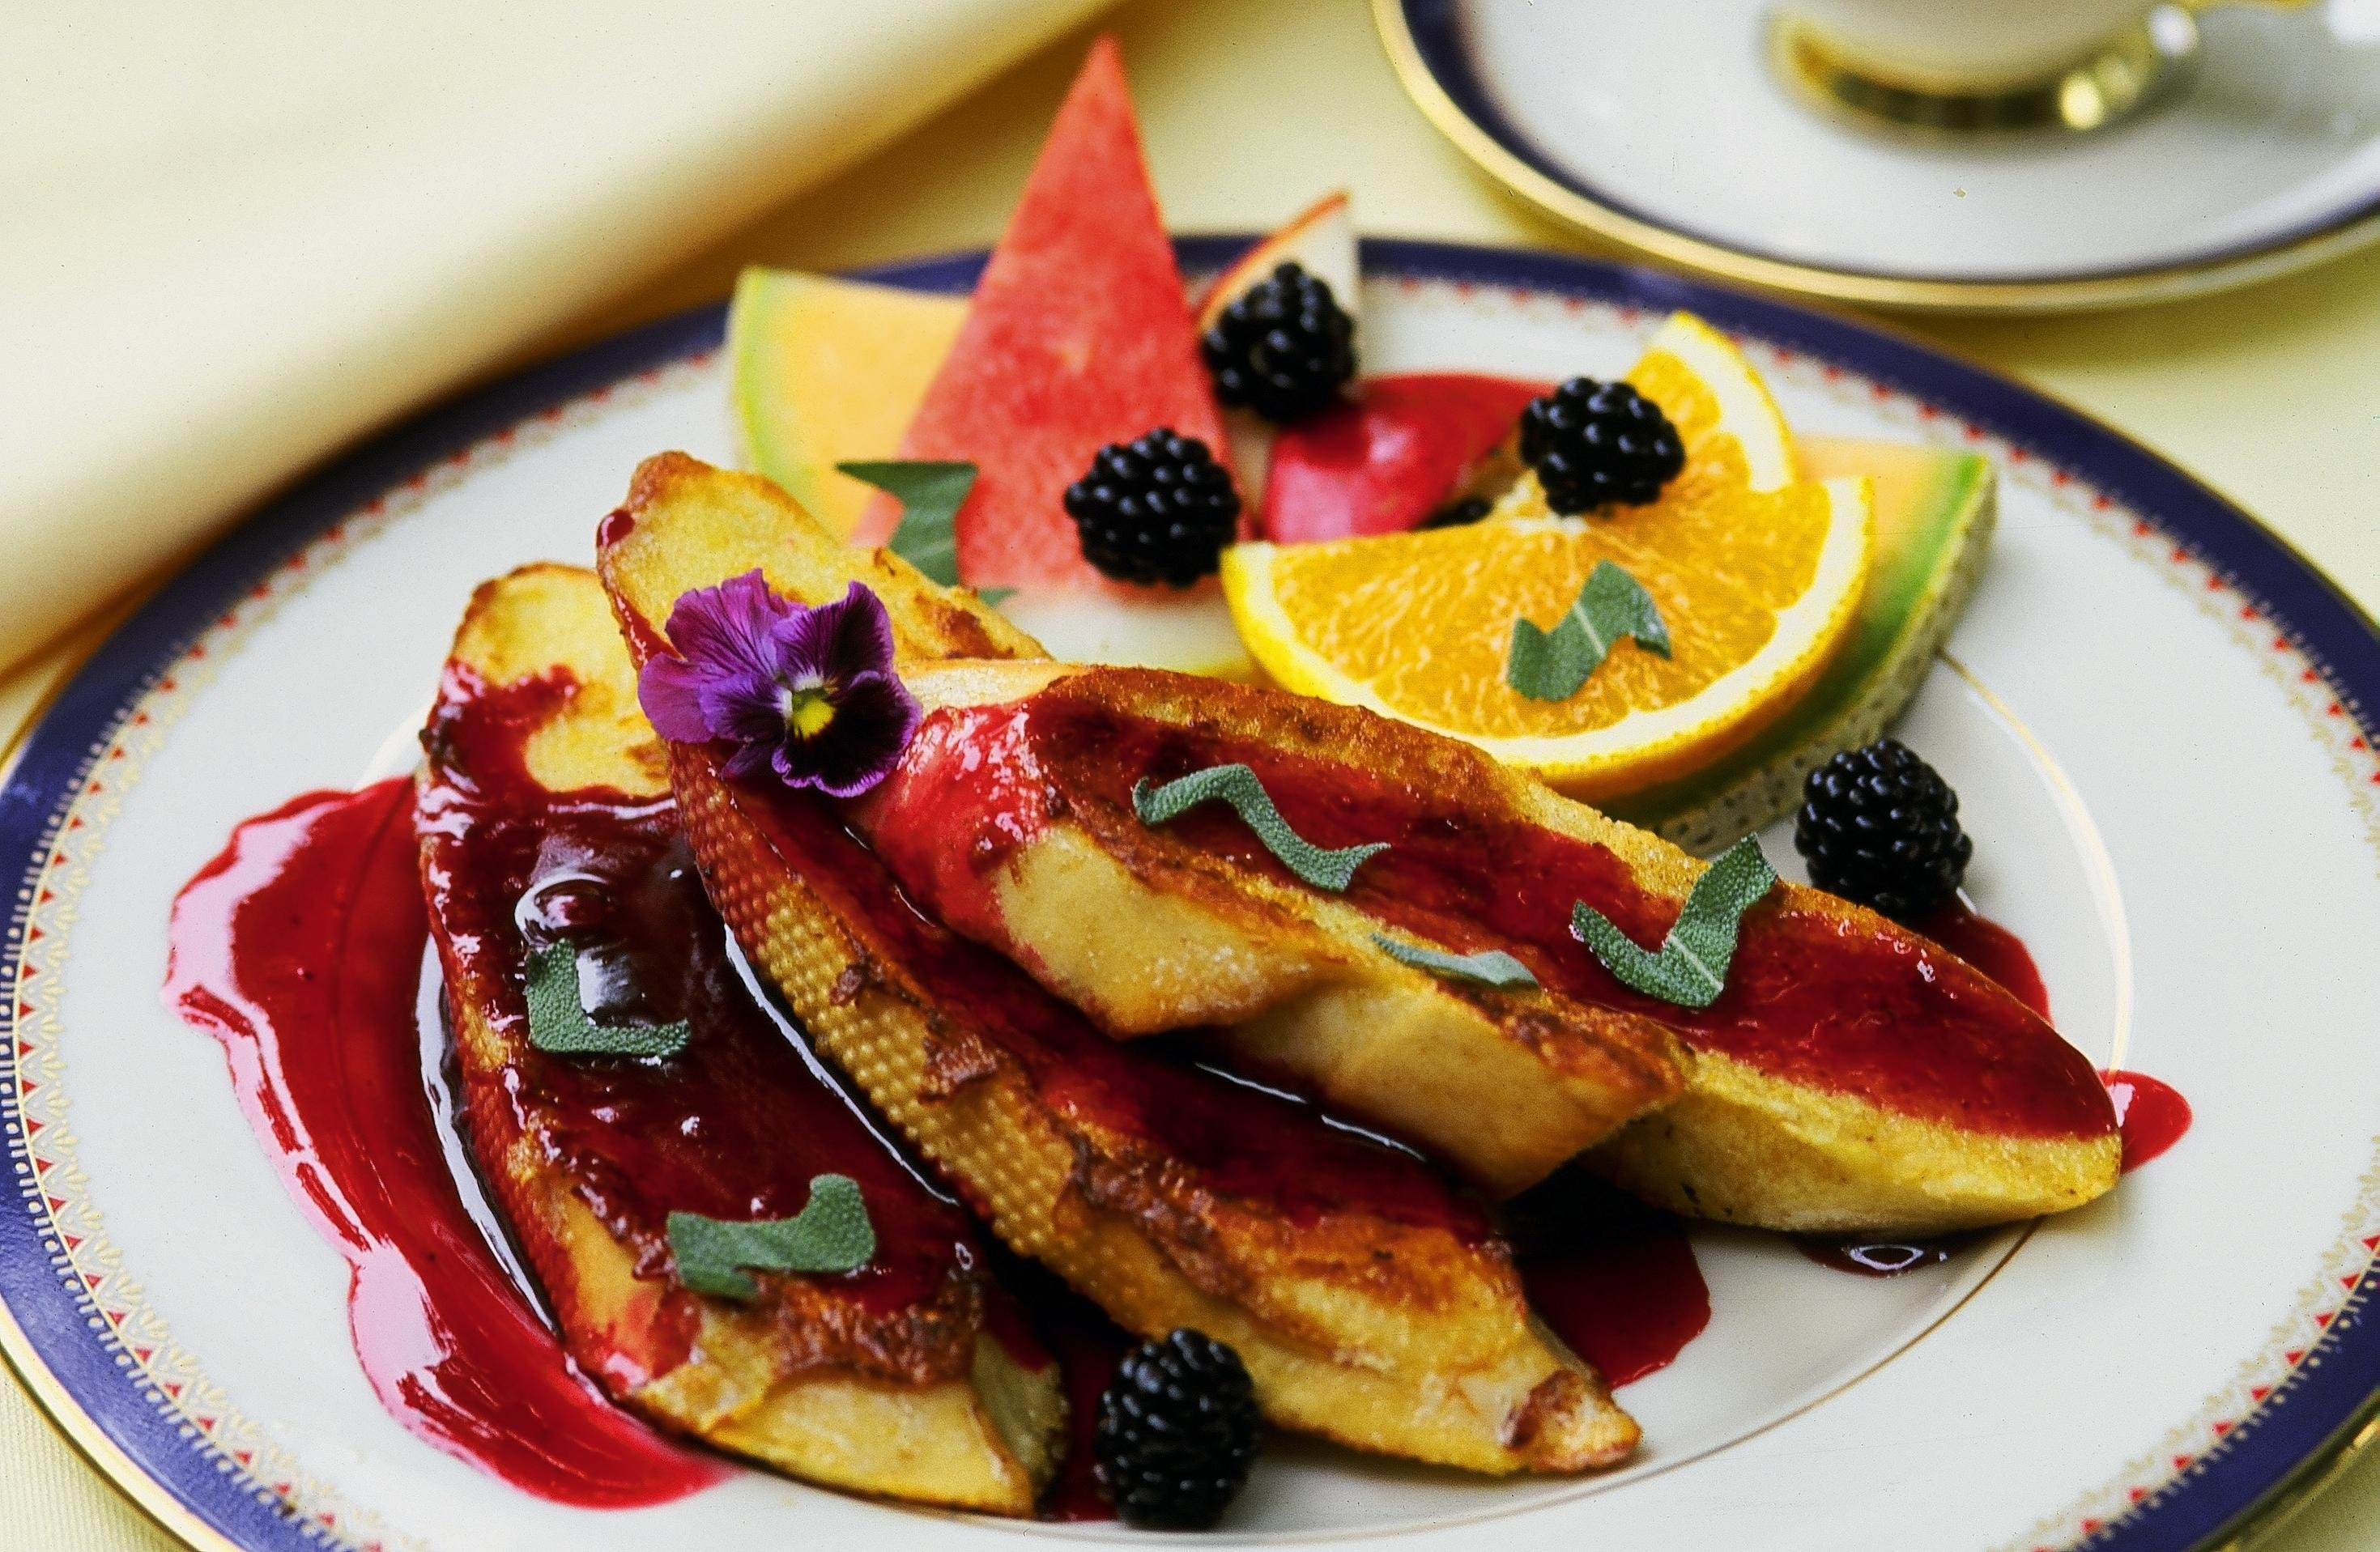 One of our signature breakfast entrees - Blackberry Sage French Toast with blackberries from our patch at Inns at Blackberry Common